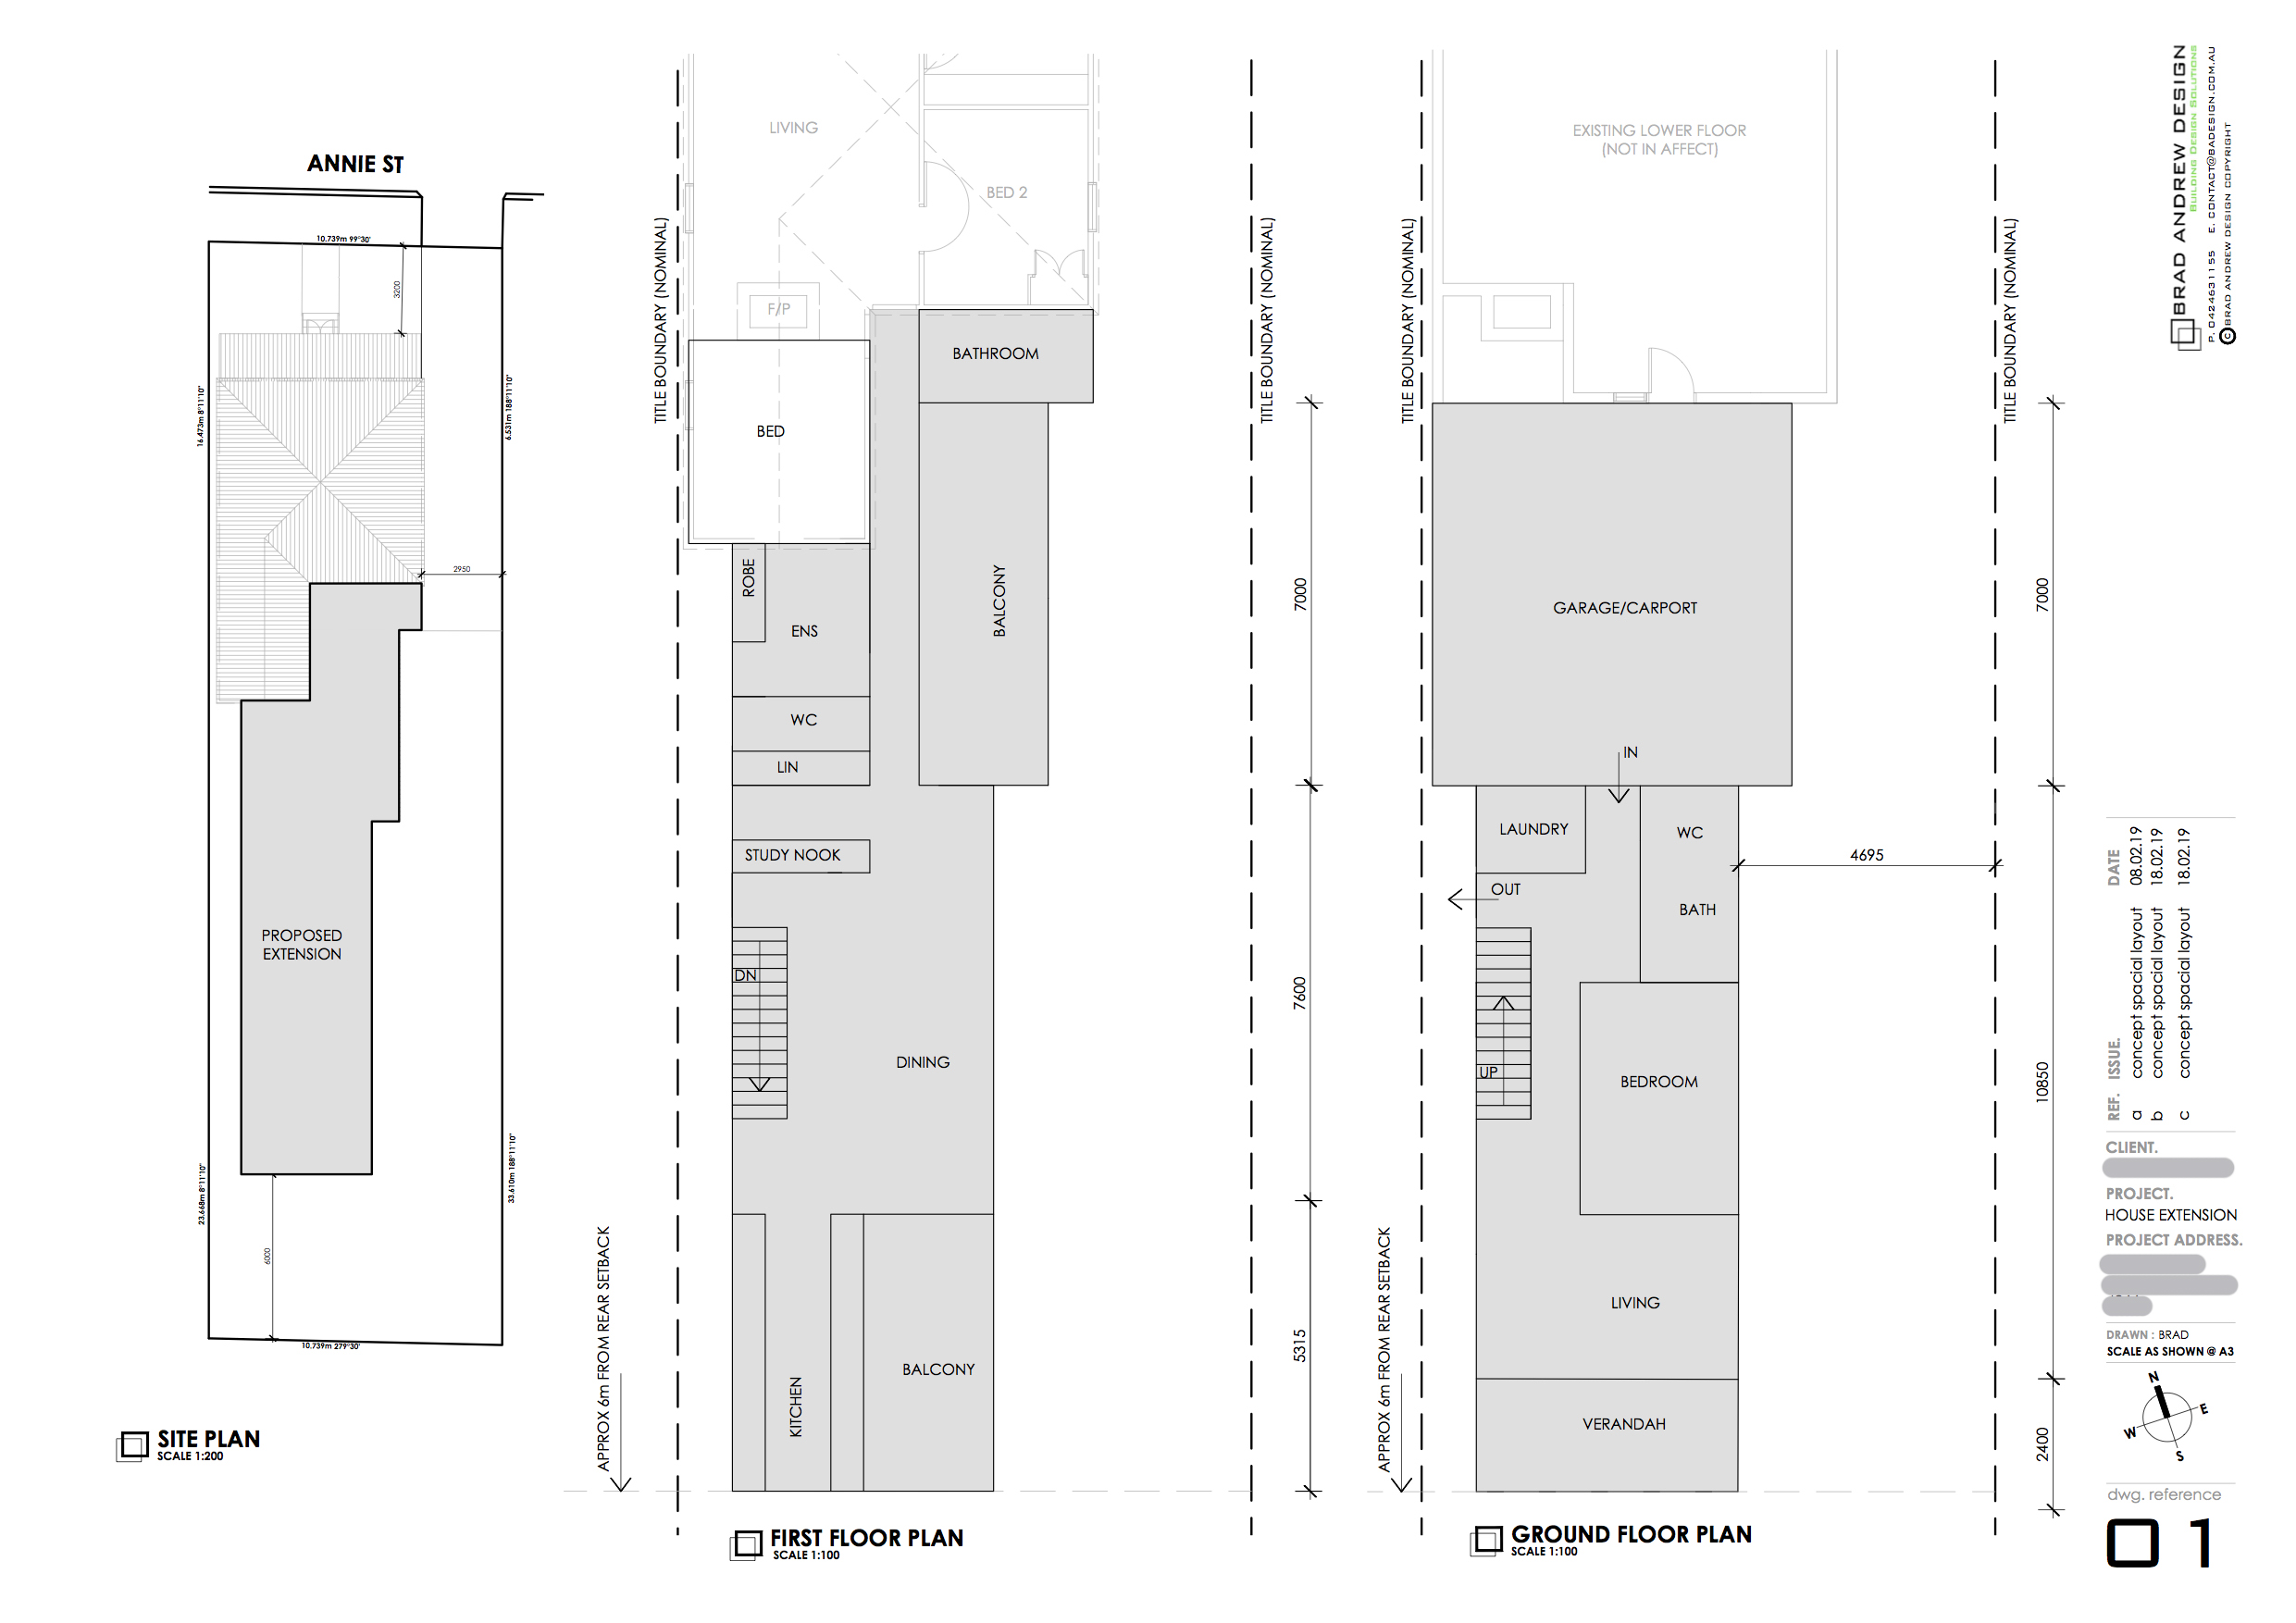 Concept Design Sample - For Site Layout and Space Planning